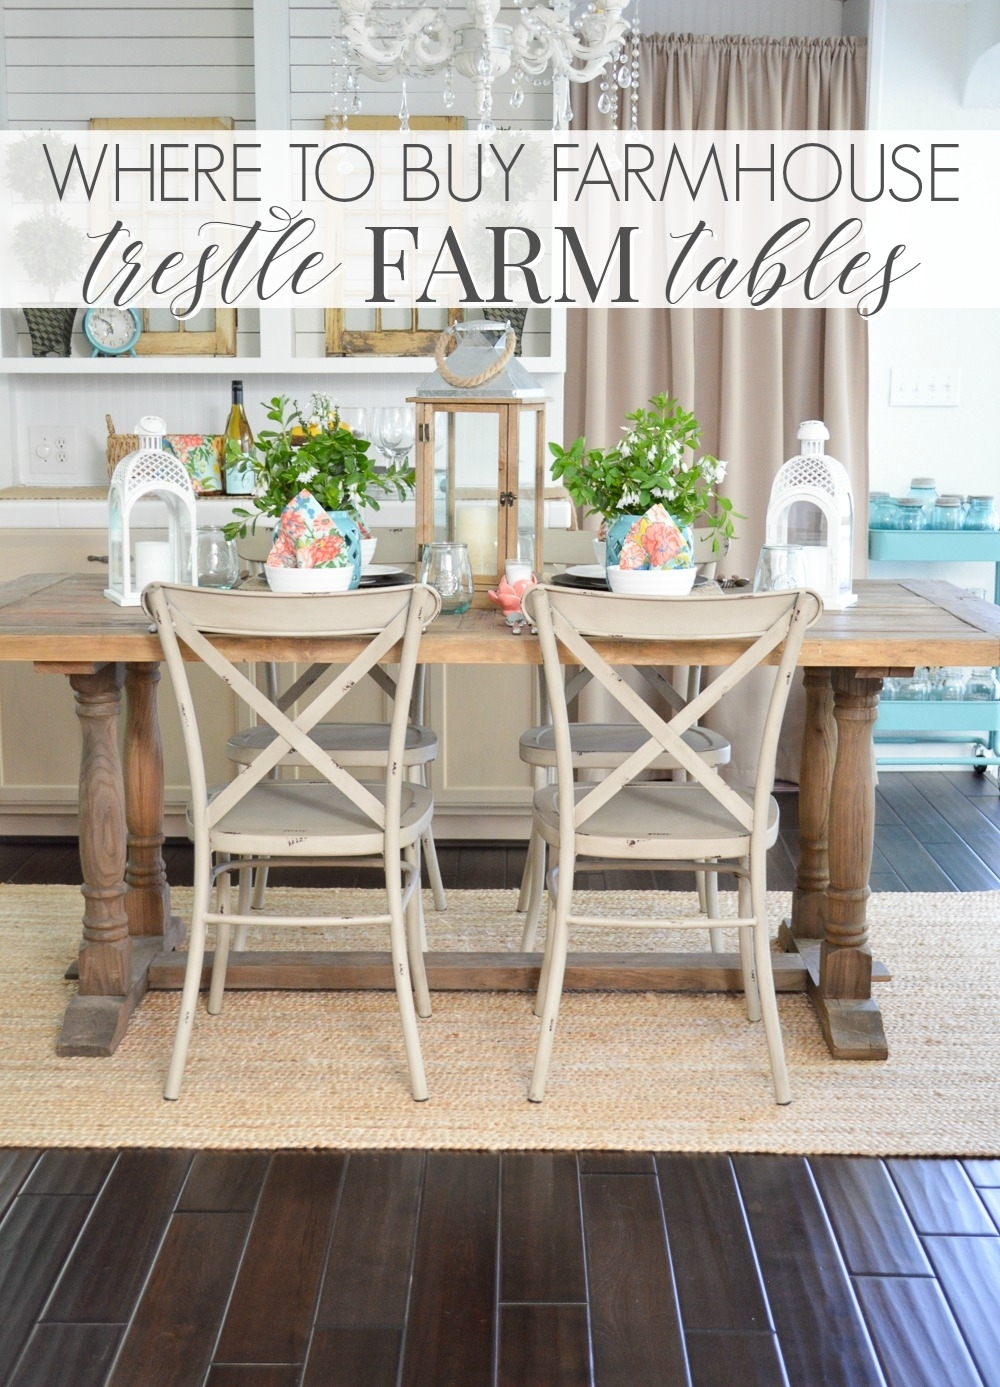 Where To Buy A Farmhouse Trestle Style Farm Table – Fox Hollow Cottage Inside Most Popular Farm Dining Tables (Image 20 of 20)